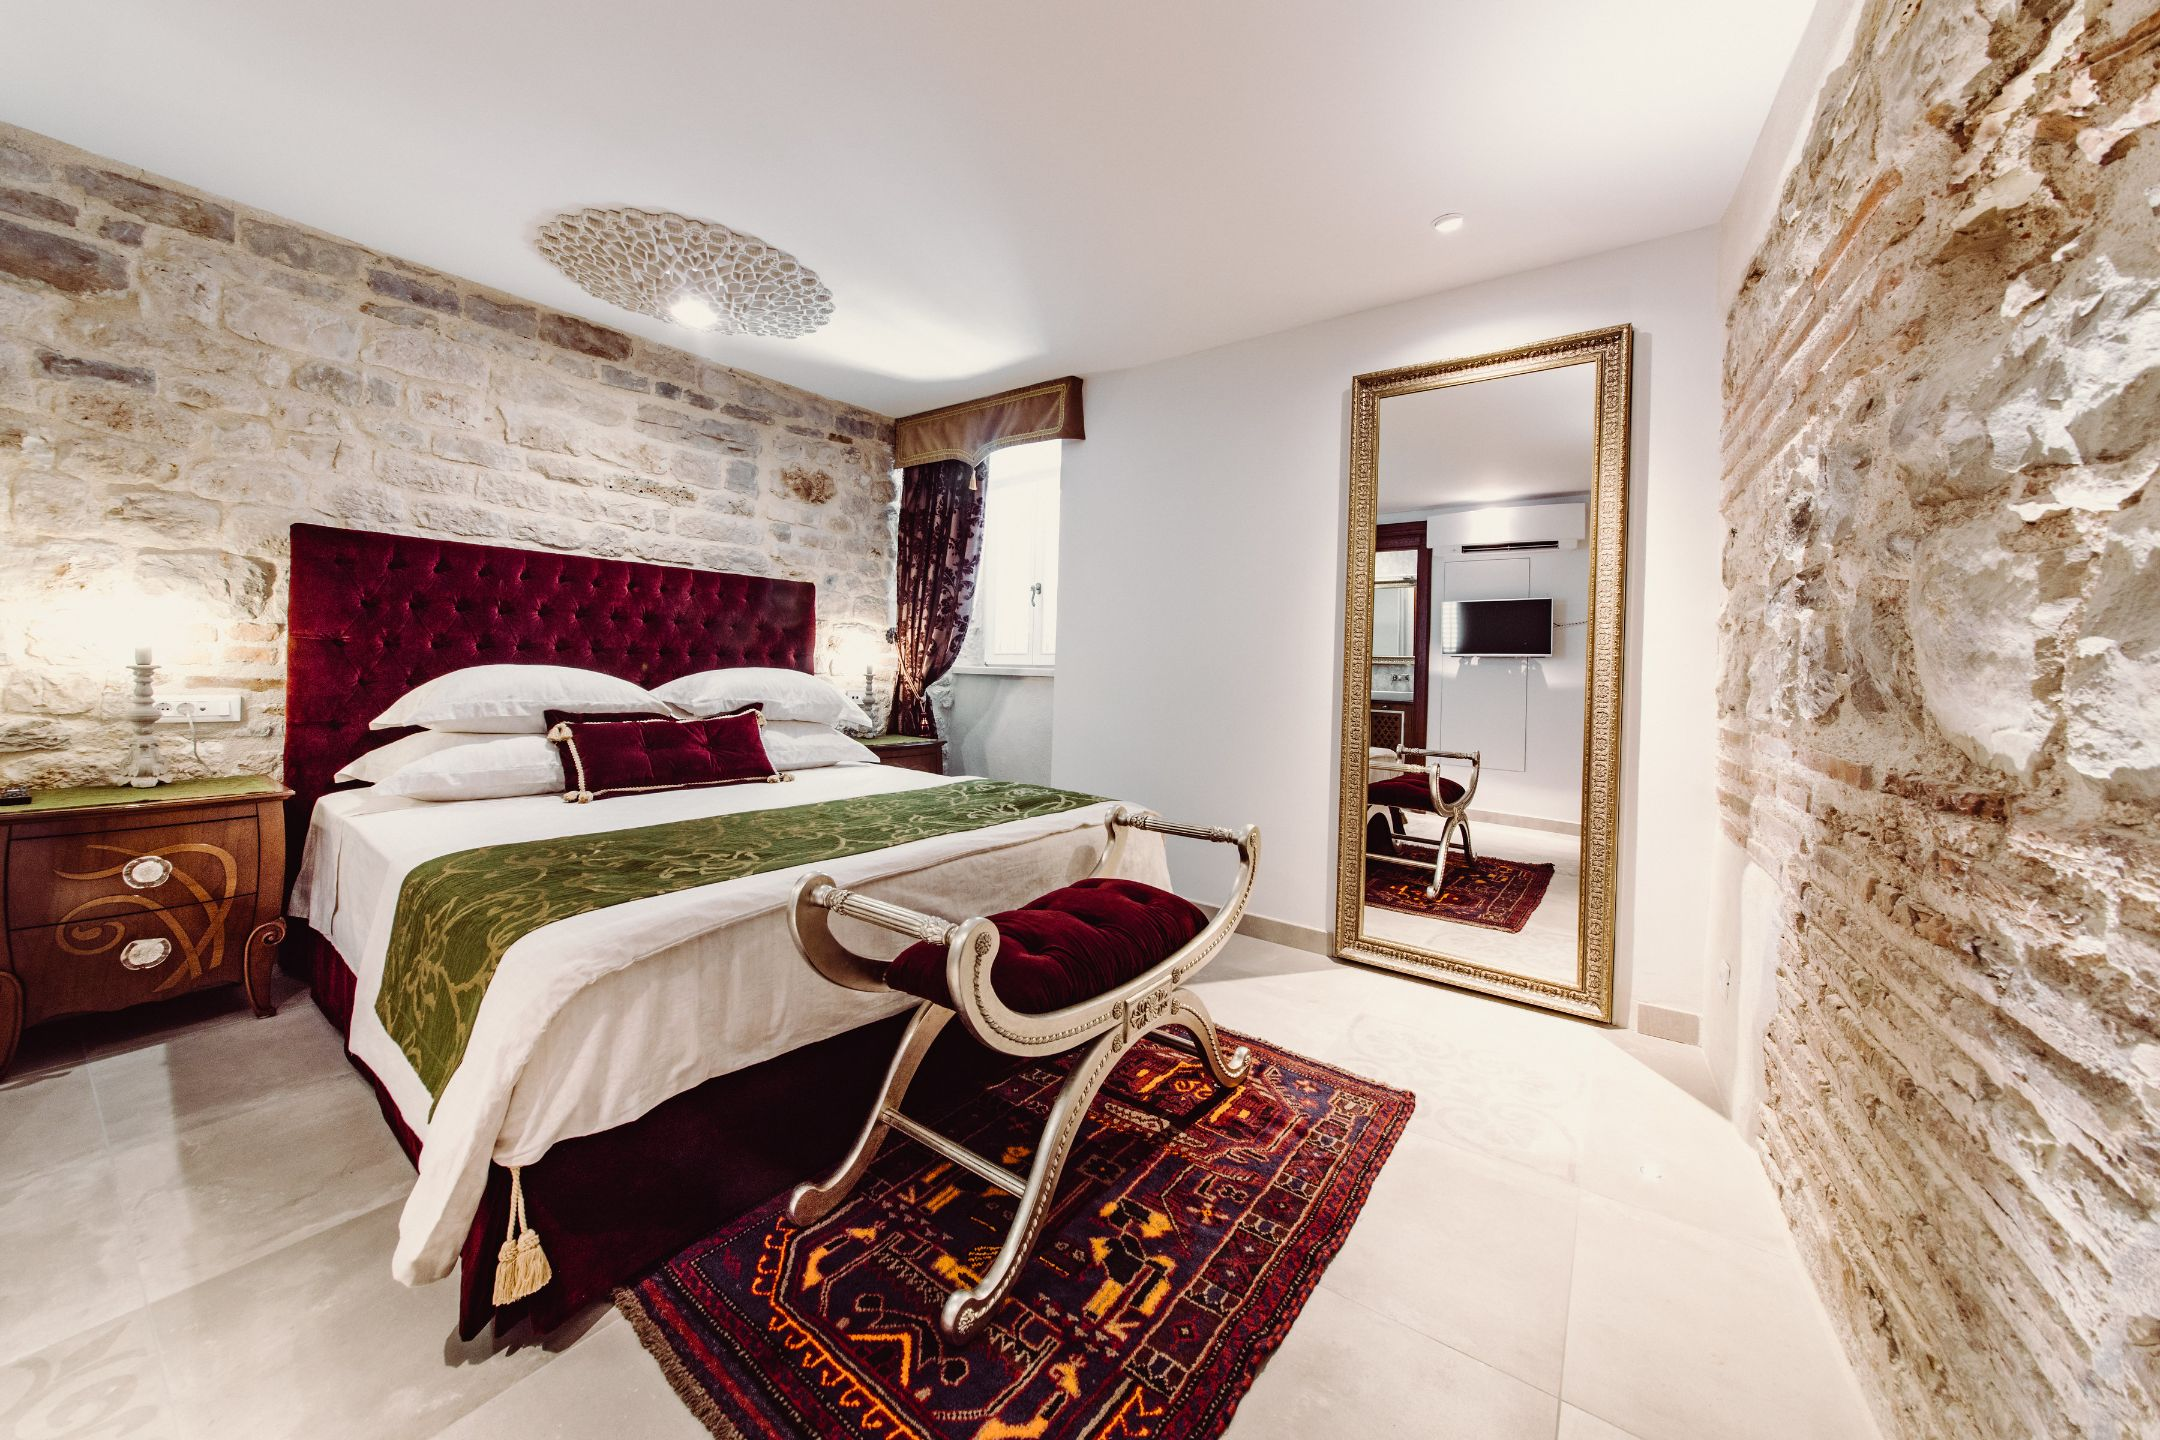 Property Image 2 - Luxury City Center Apartment with Authentic Decor on Palace Square